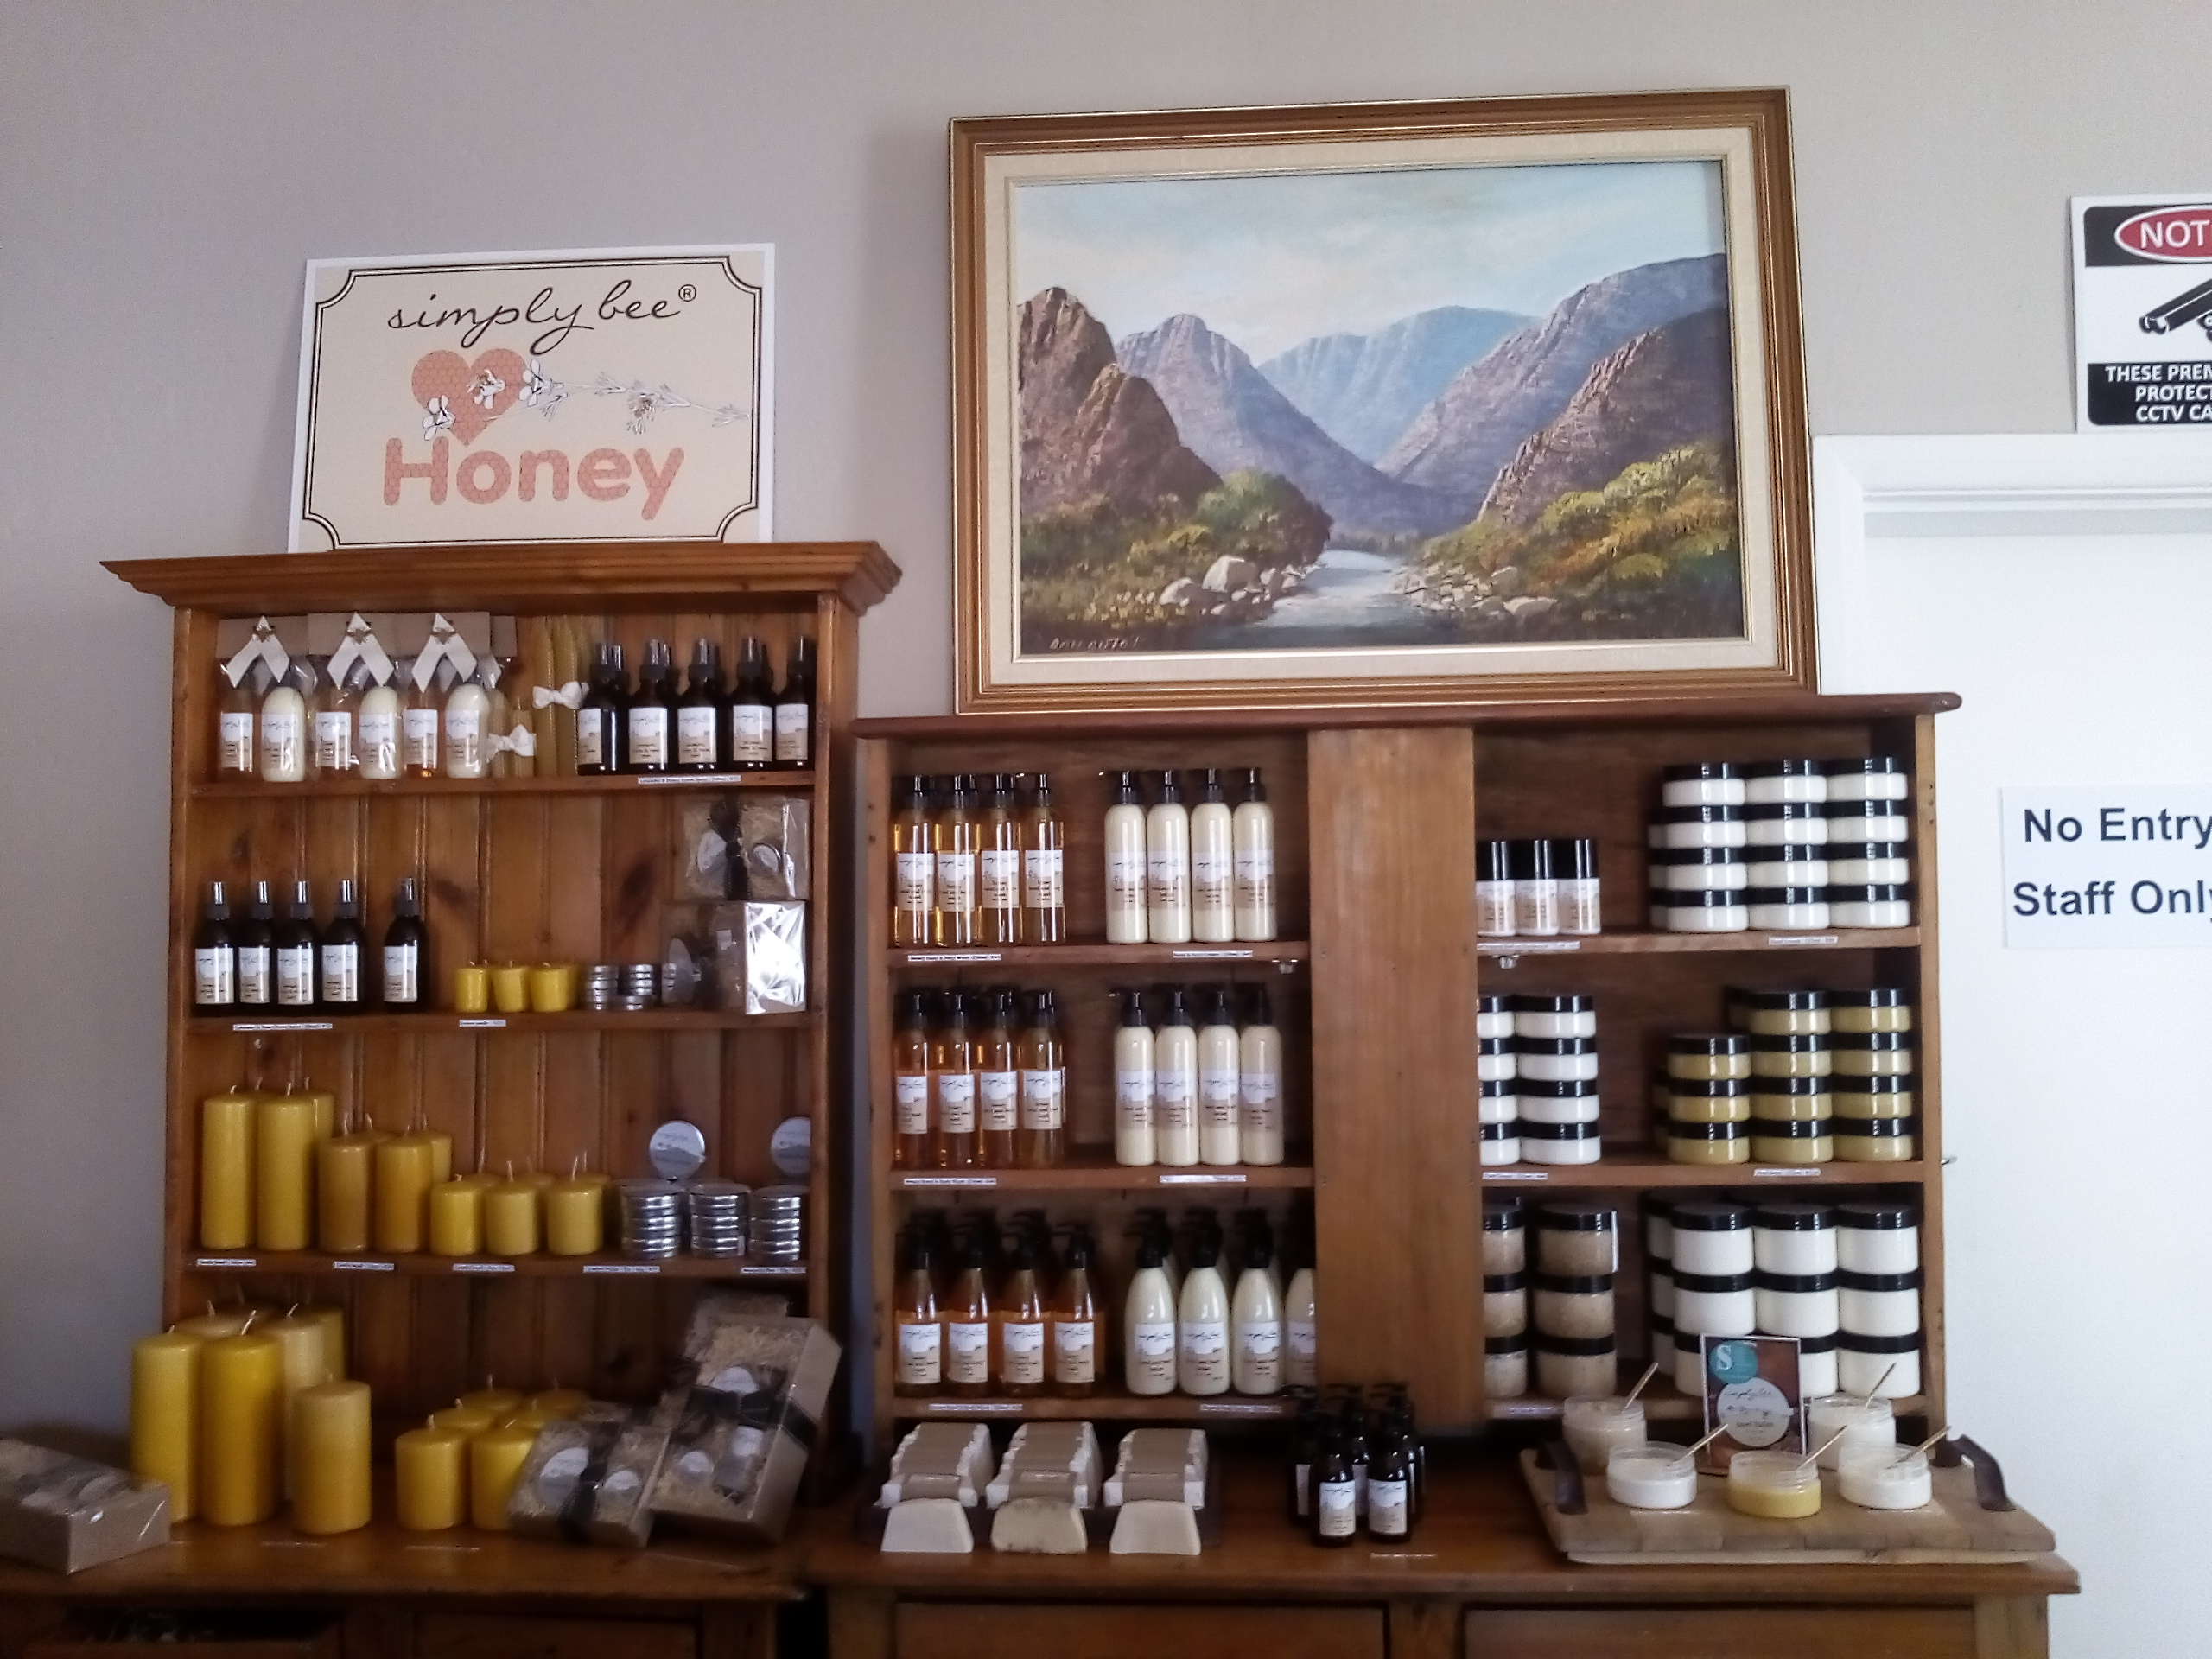 Bees and propolis products